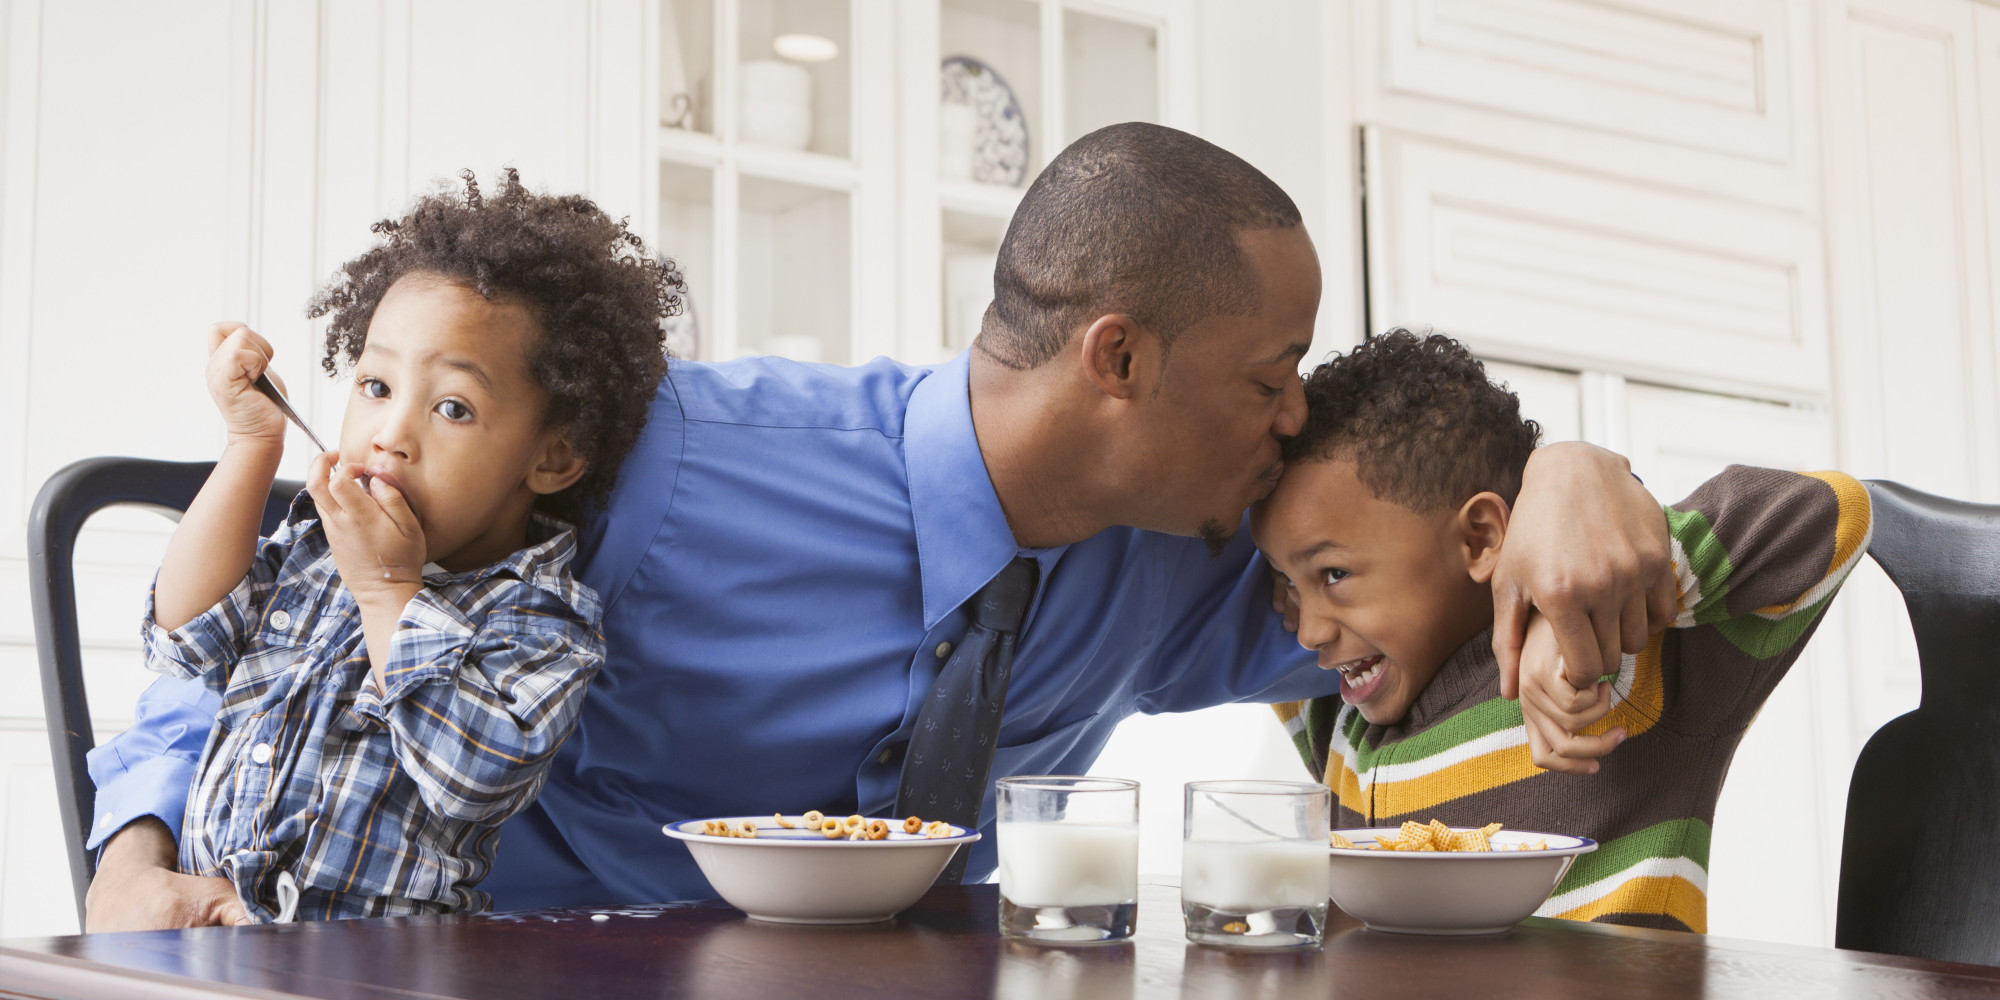 Ask JJ: How To Think Outside The Cereal Box? | HuffPost